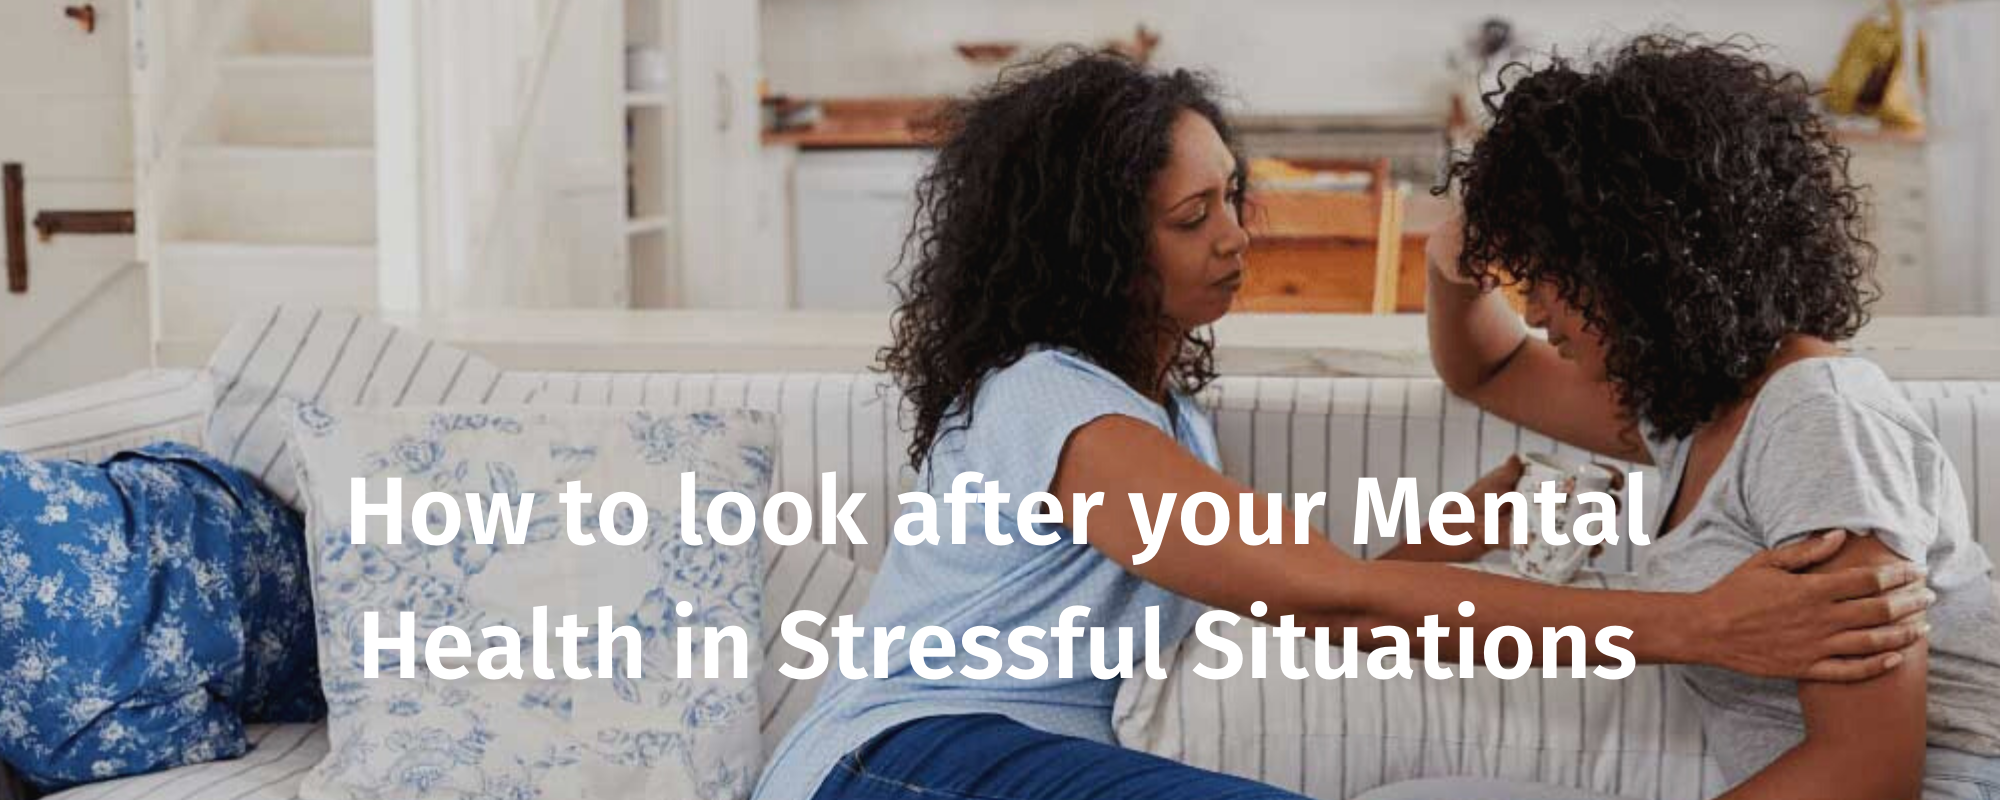 How to look after your Mental Health in Stressful Situations